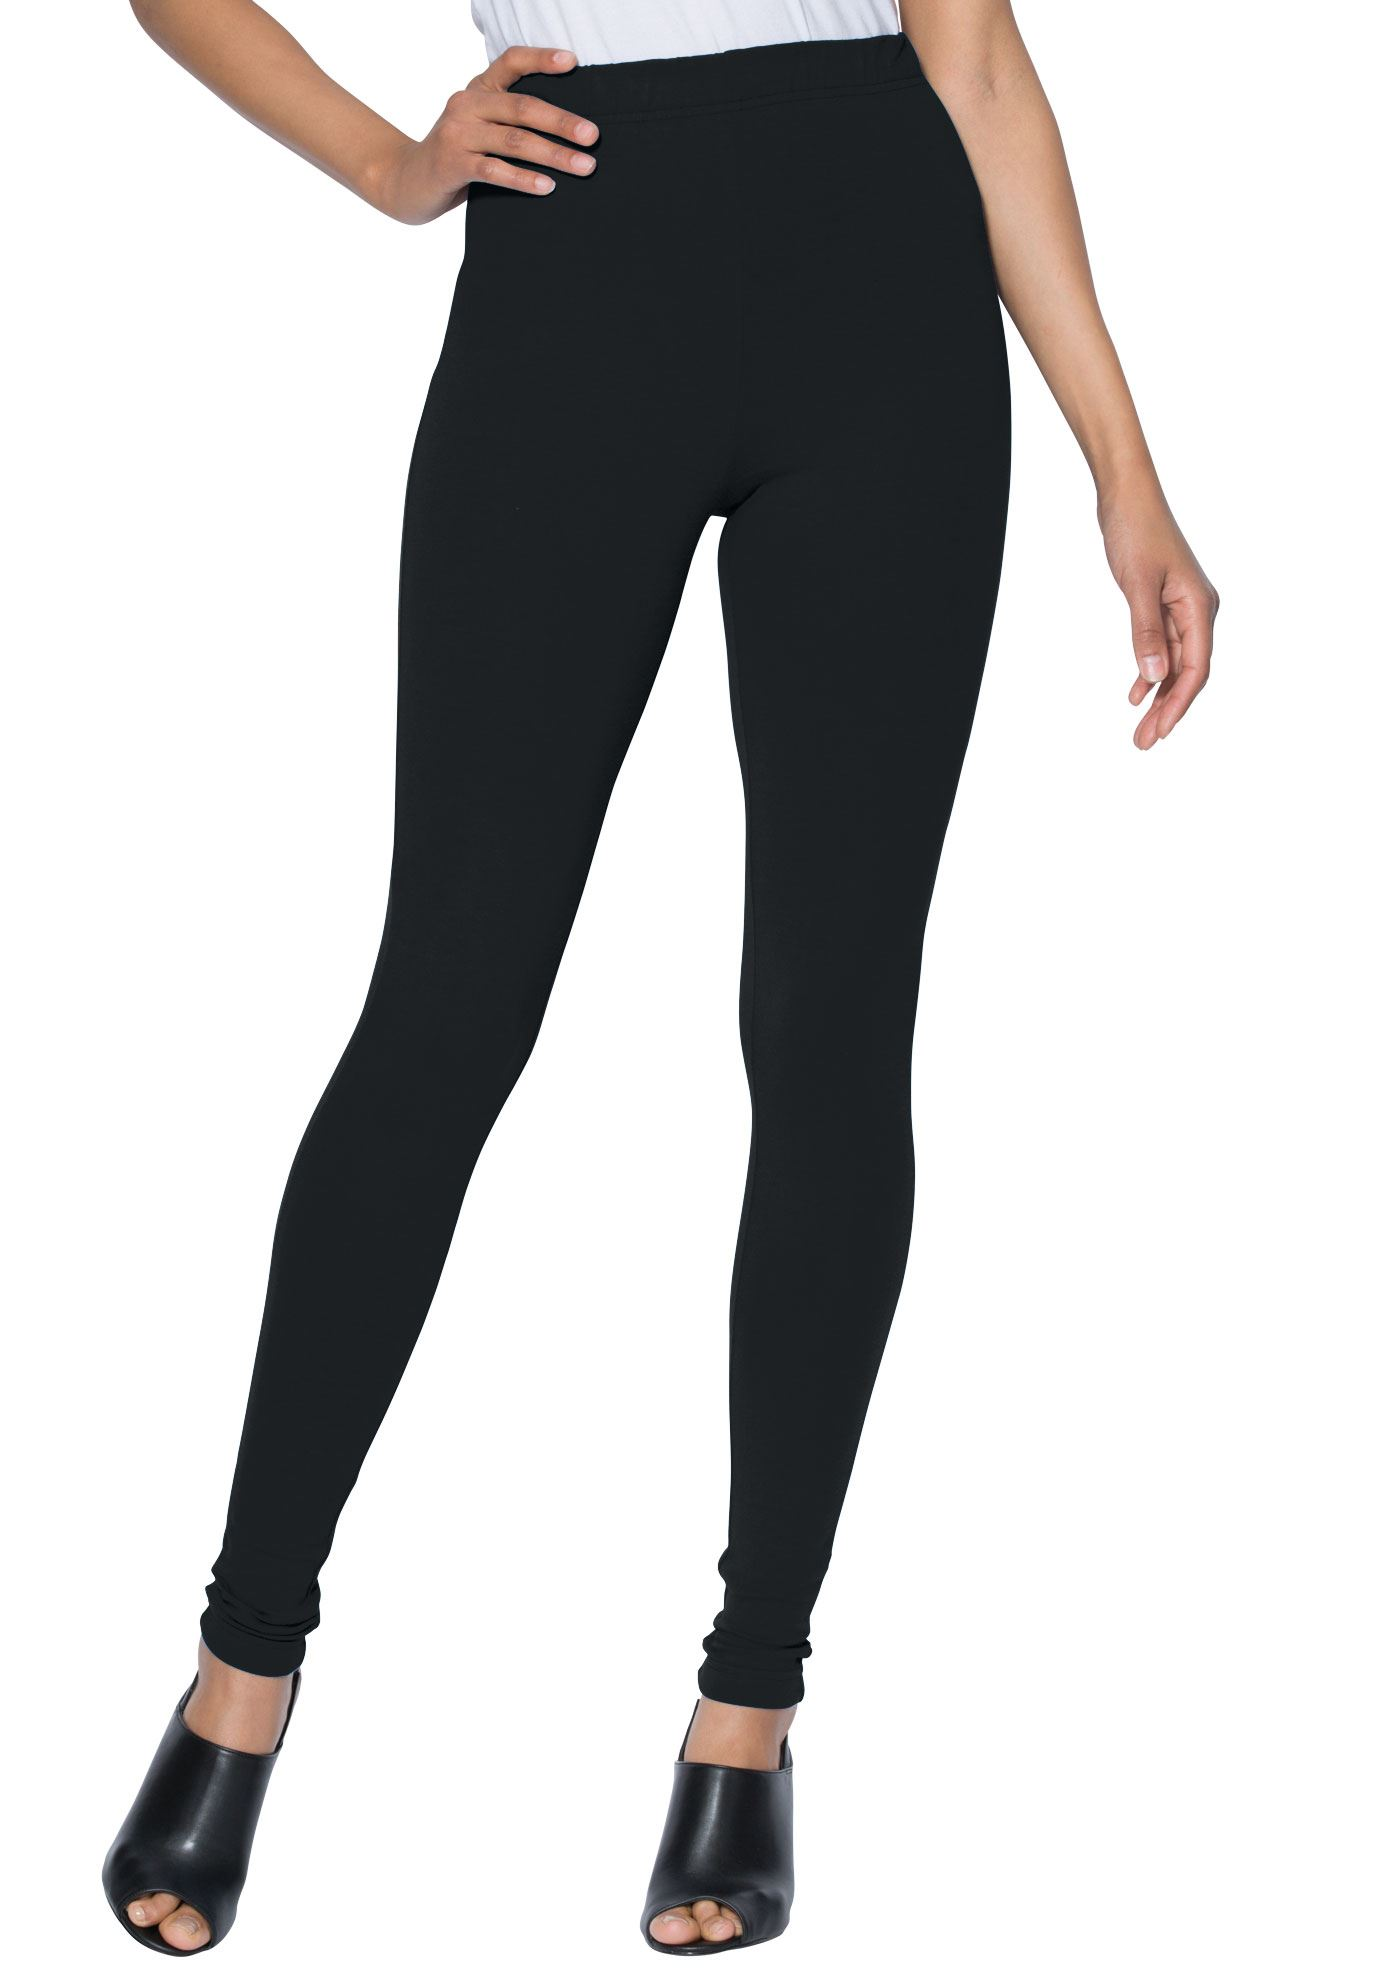 Roaman's Plus Size Tall Essential Stretch Legging